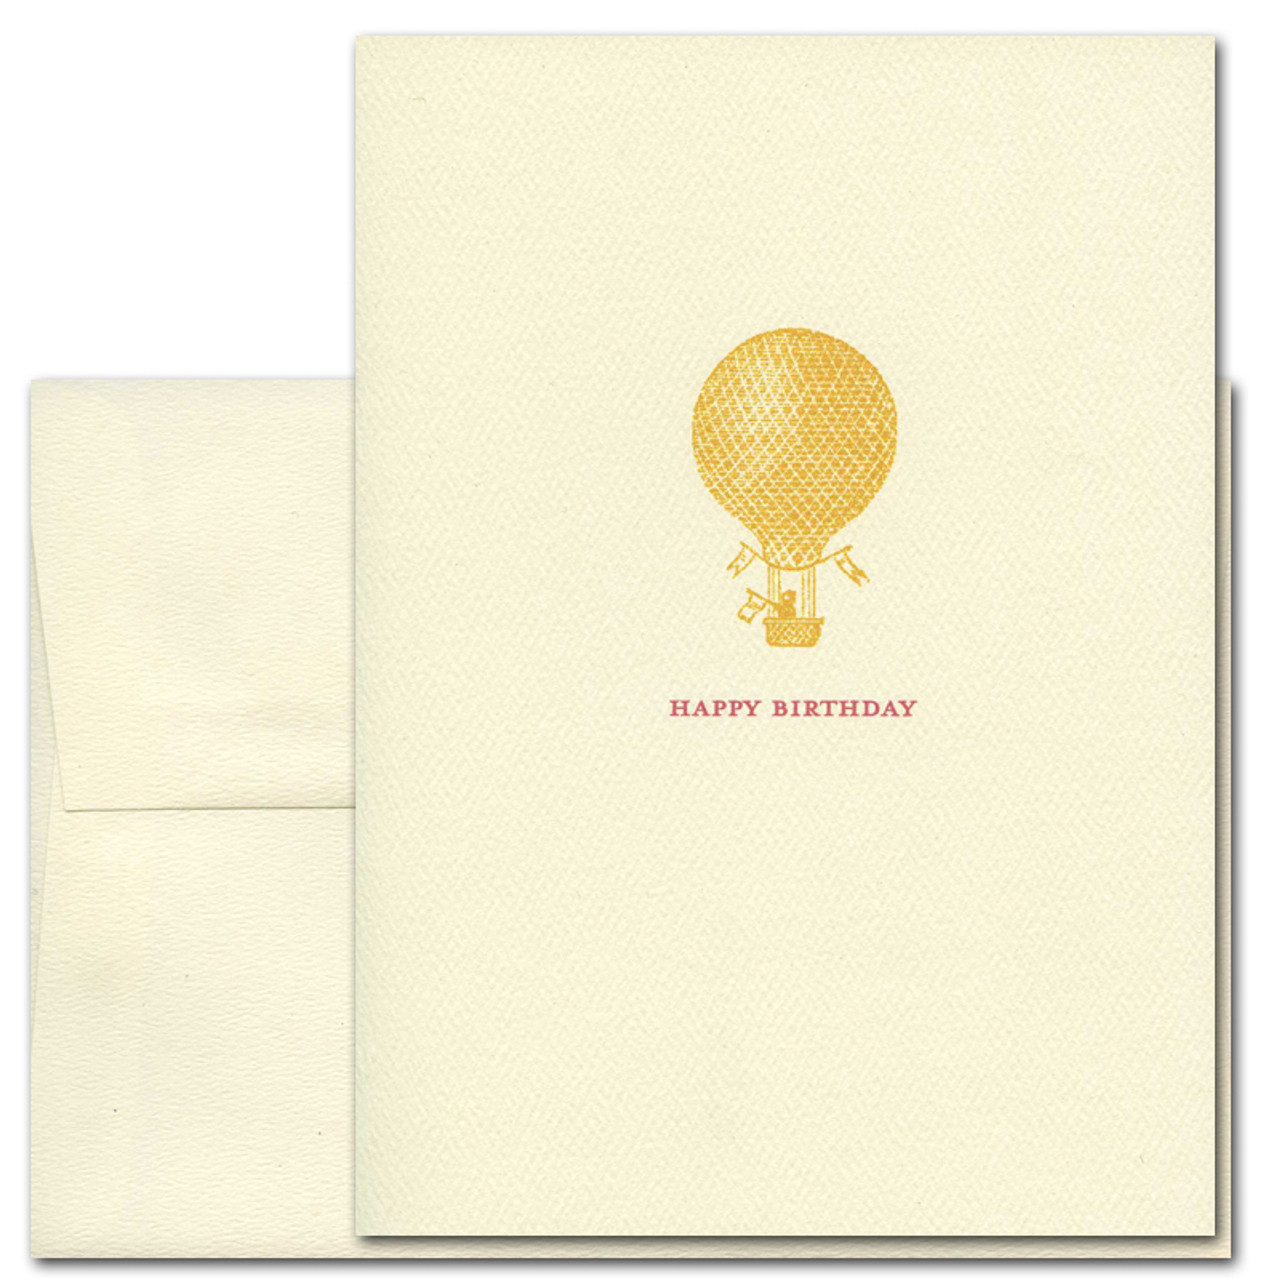 "Boxed Classic Business Birthday Card Golden Balloon Cover with illustration of gold hot air balloon and the words ""Happy Birthday"" in red lettering"